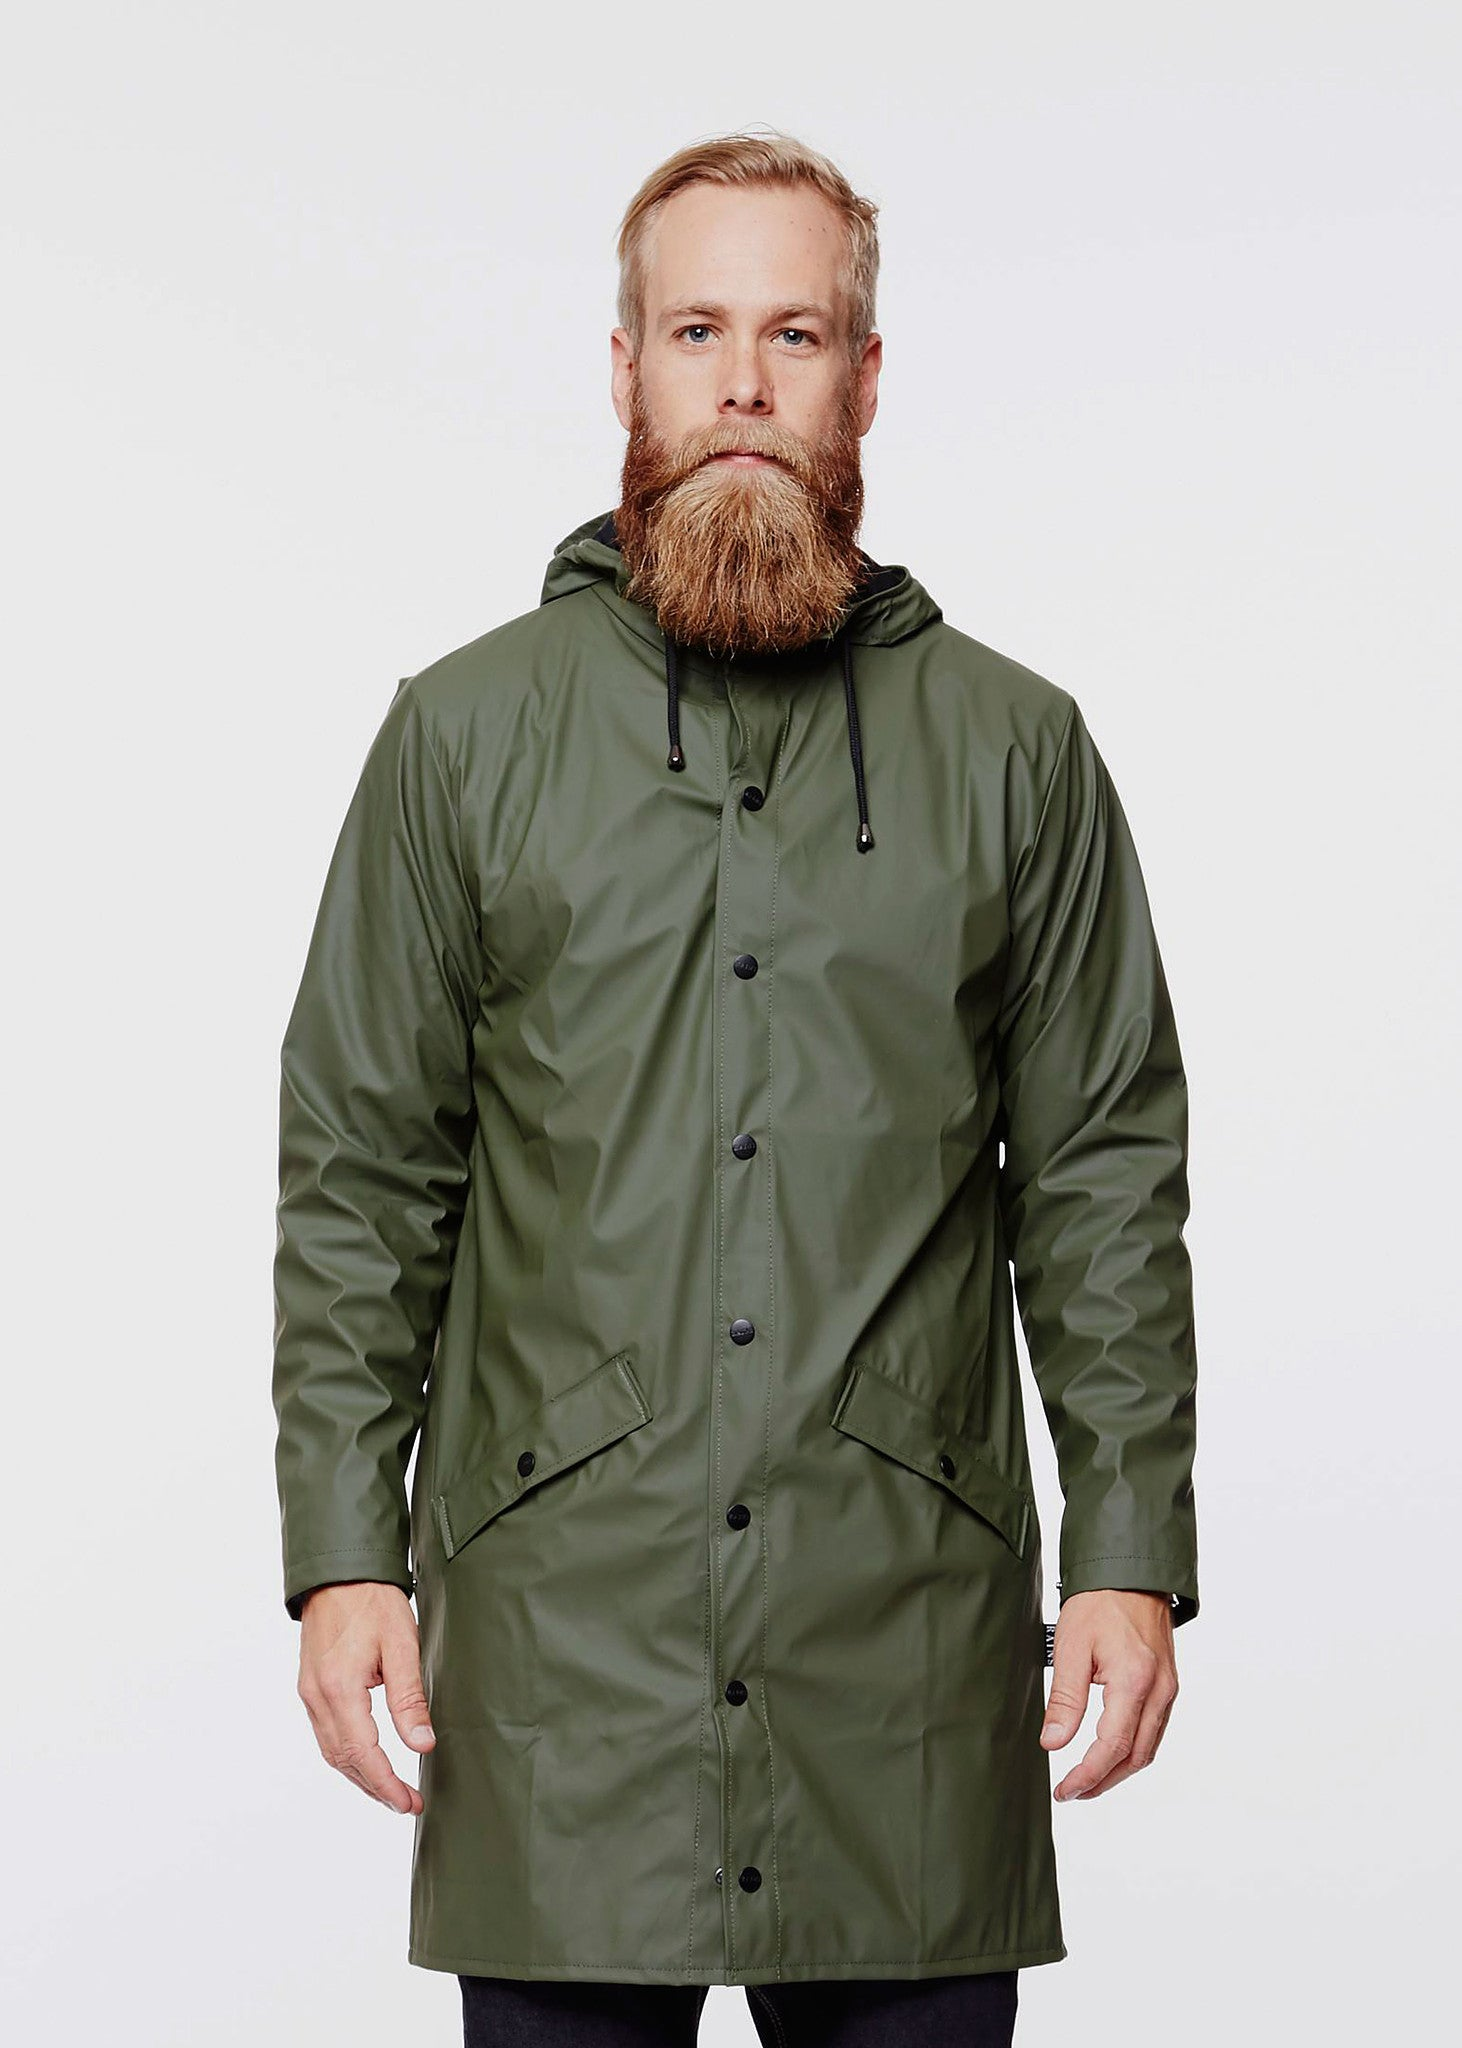 Long Jacket Raincoat Green